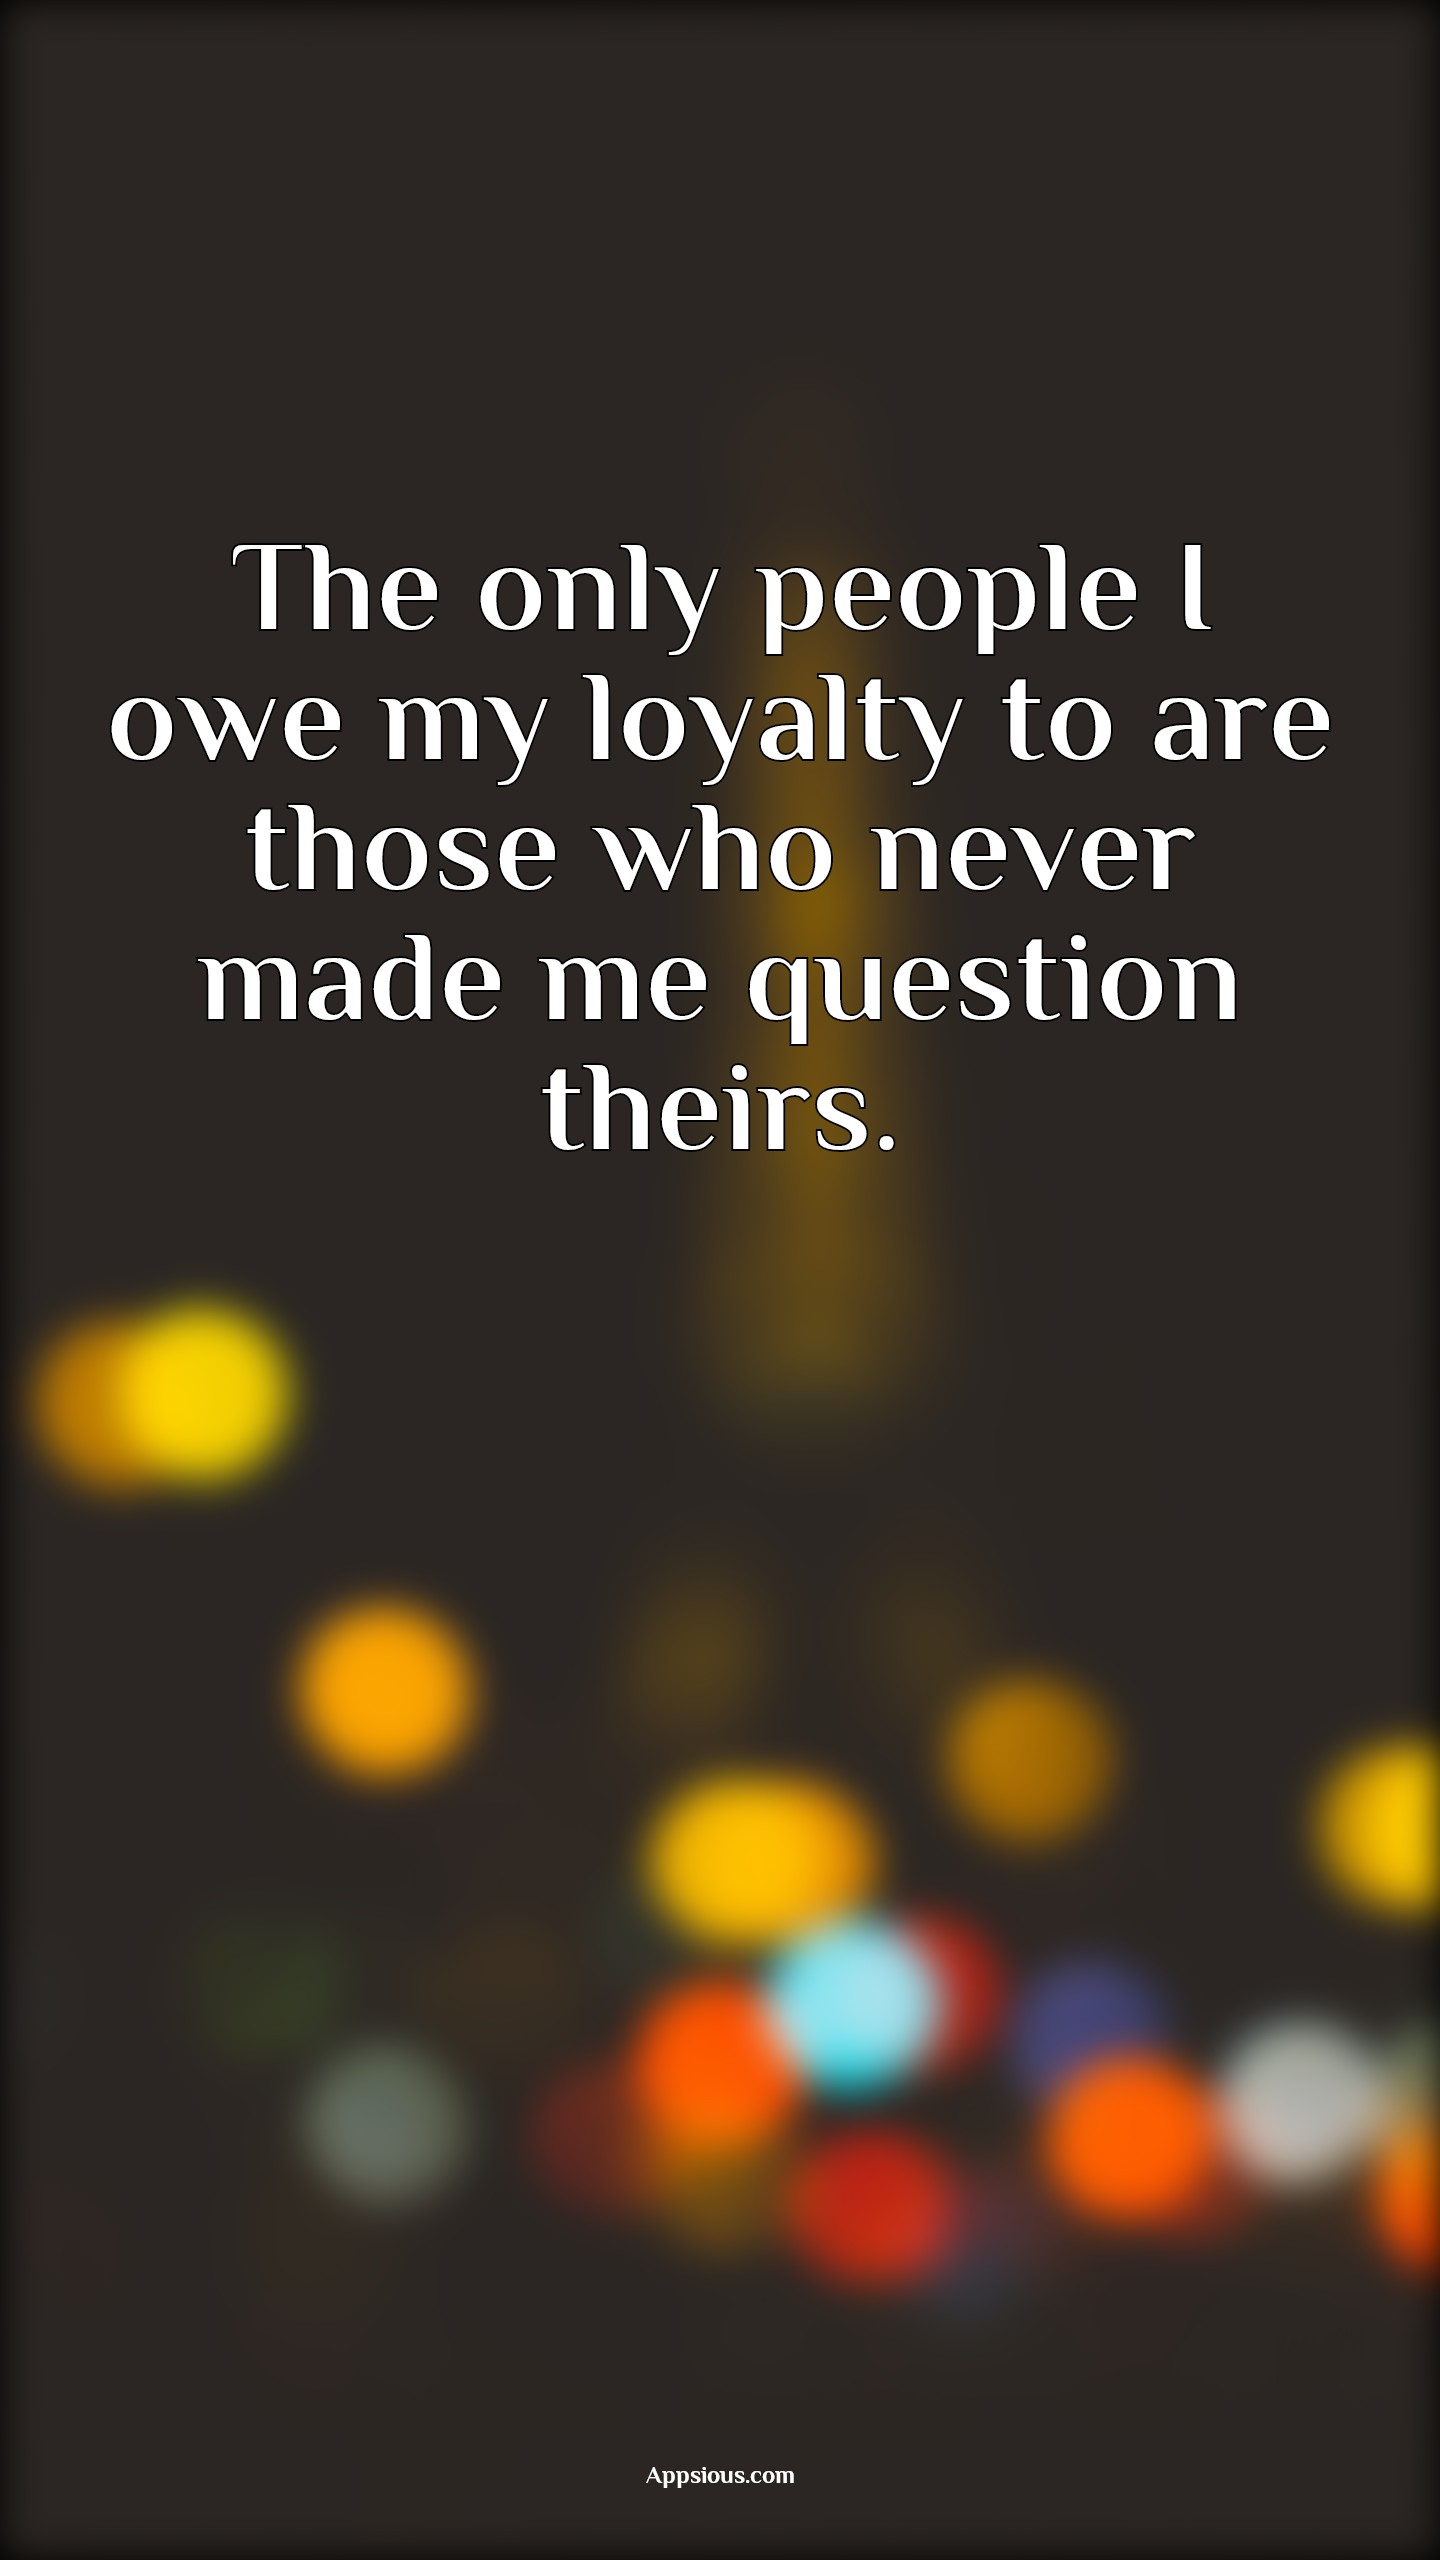 The only people I owe my loyalty to are those who never made me question theirs.